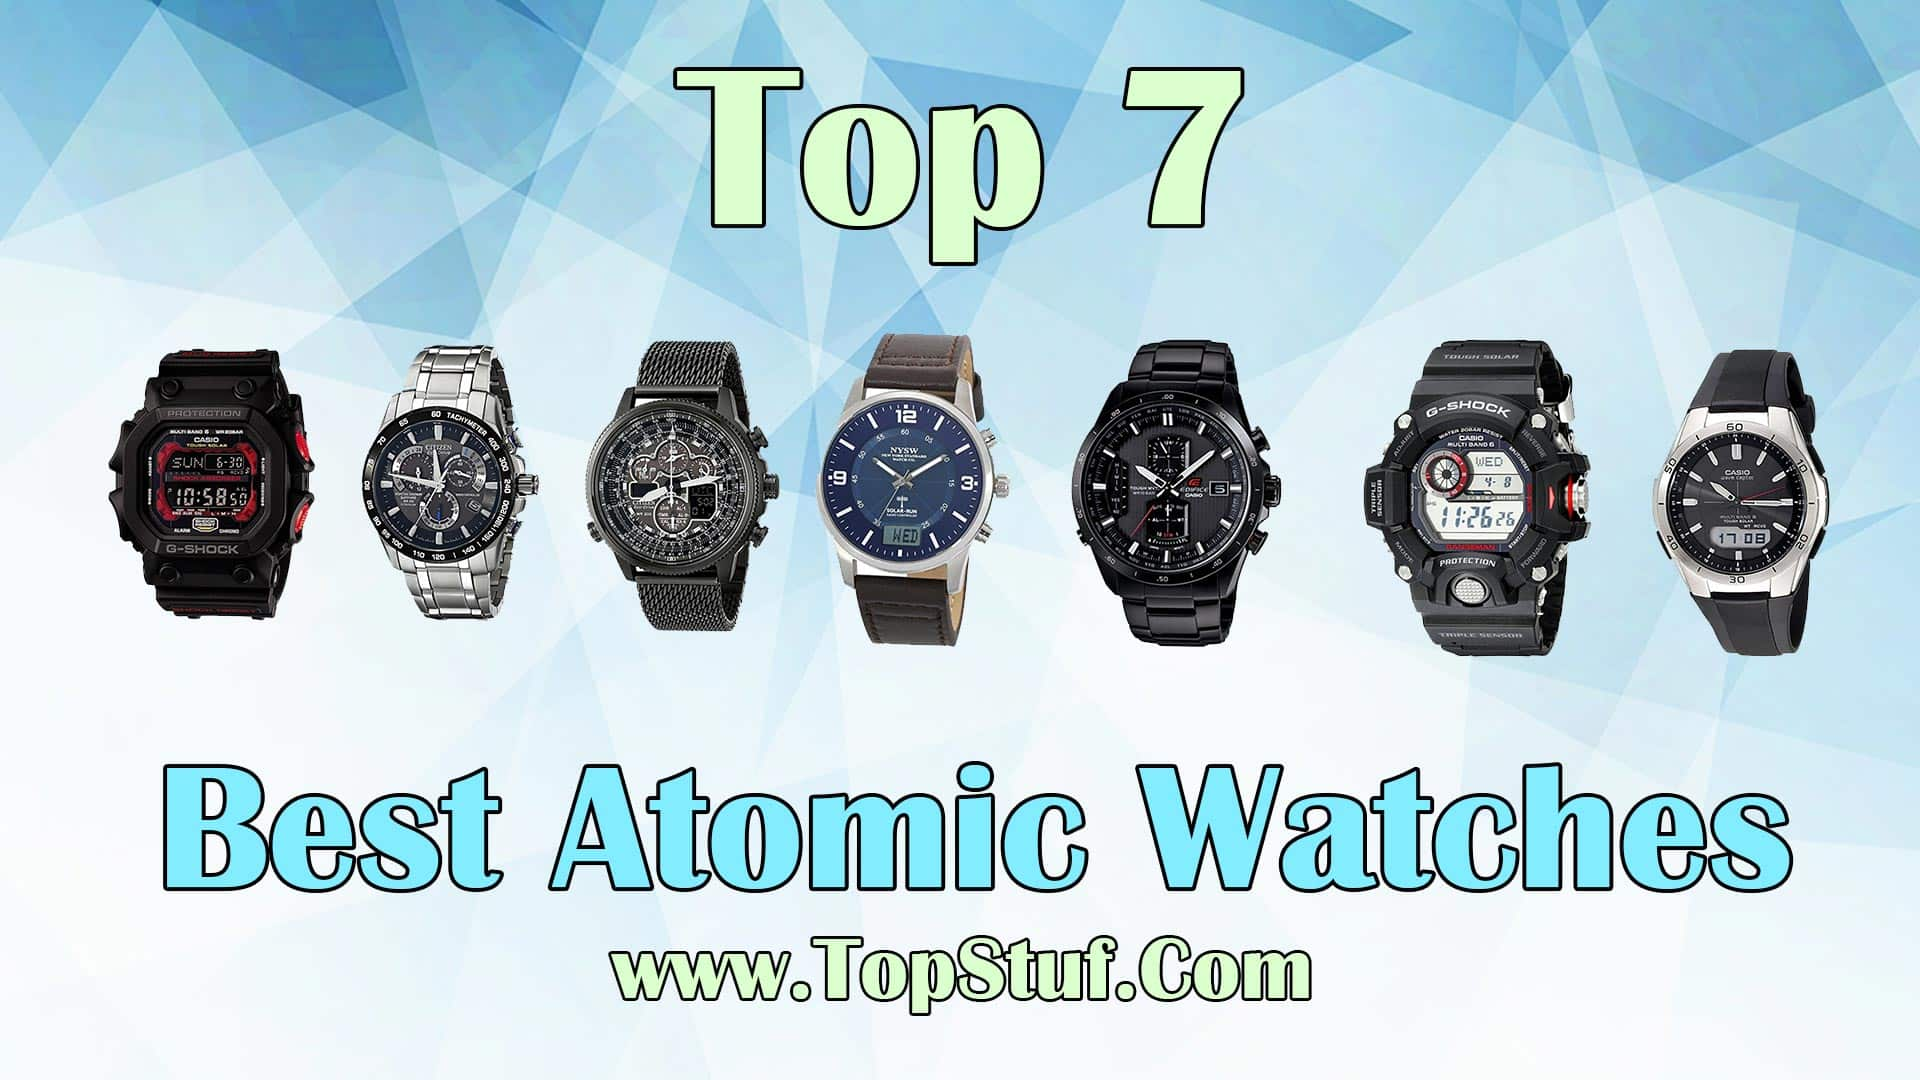 Top 7 Atomic Watches